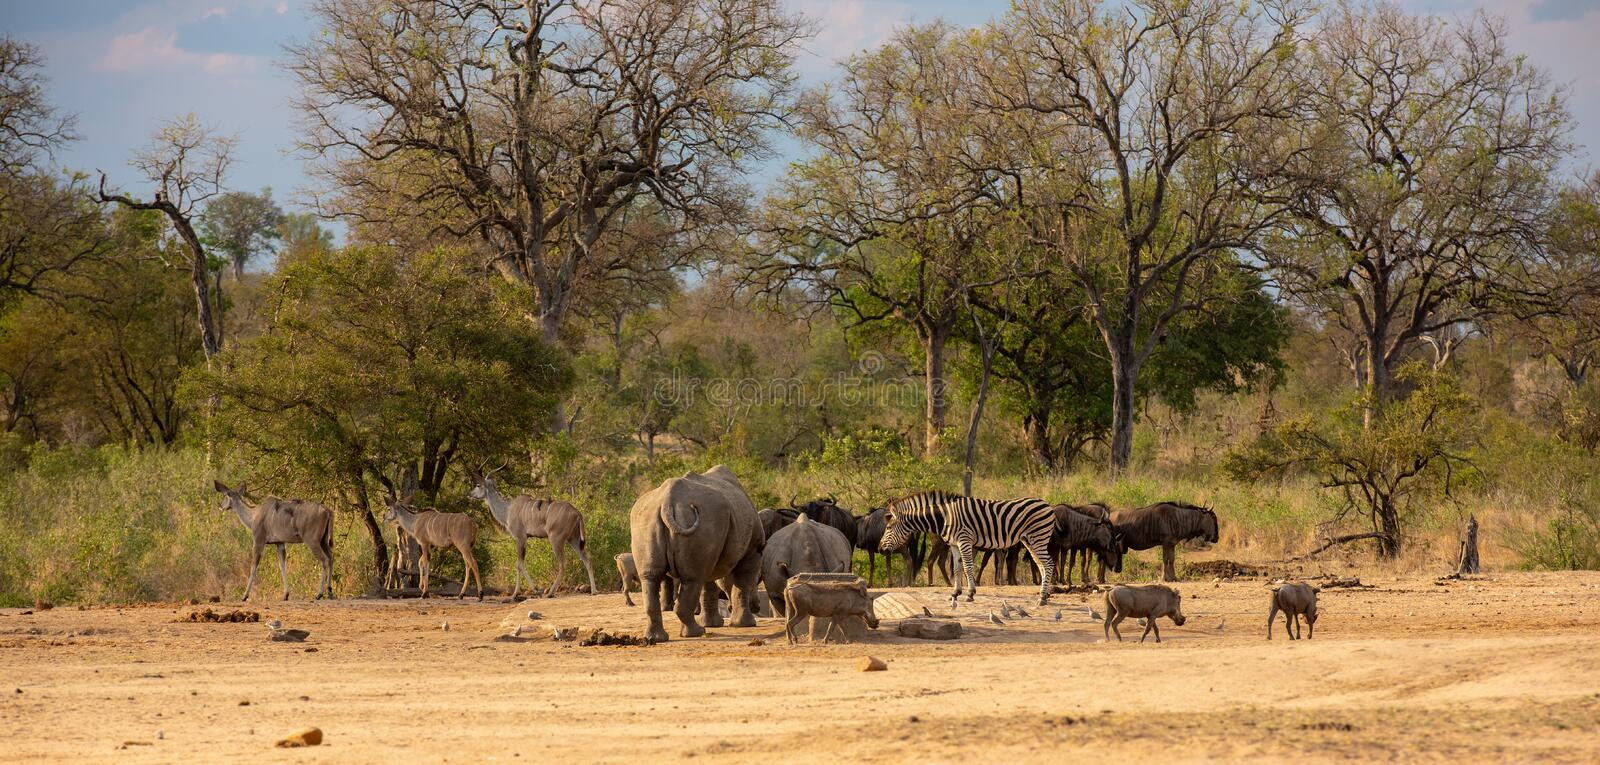 African wildlife assortment with various animals in South Africa stock photography